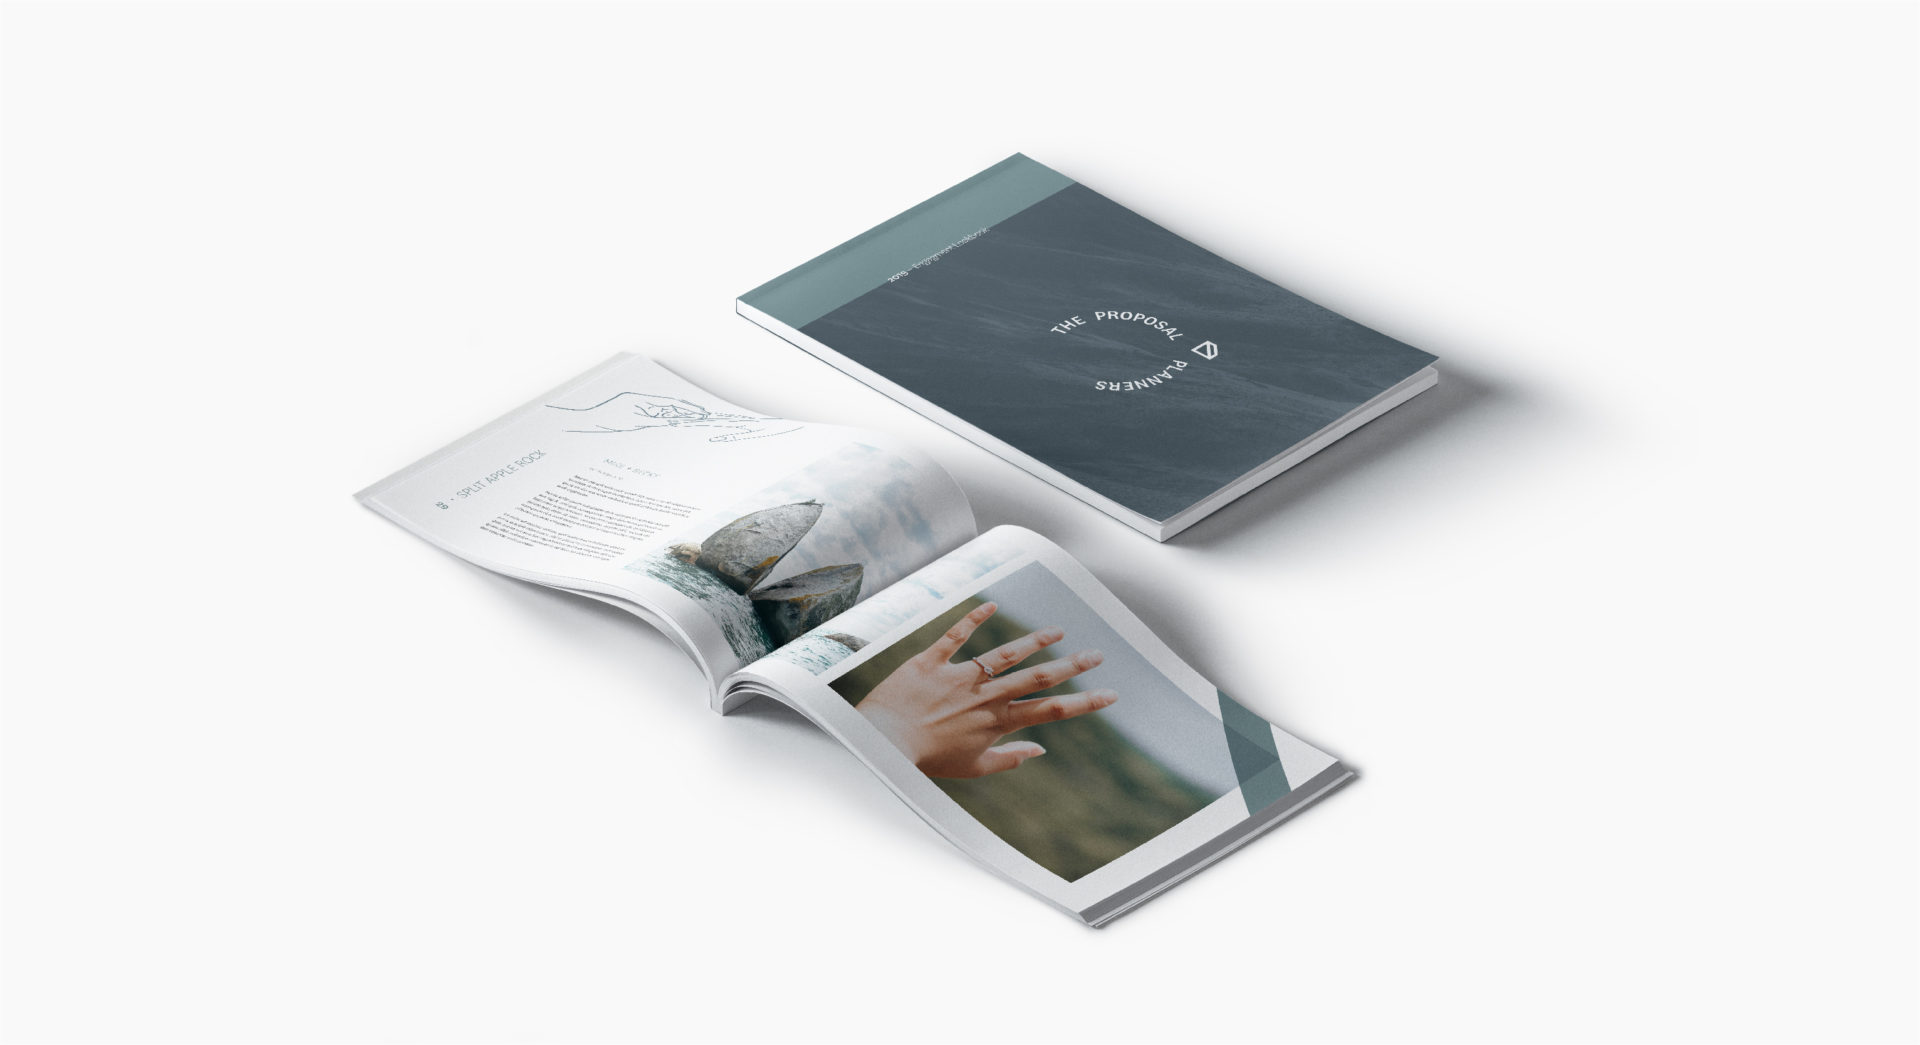 Proposal Planners magazine hand